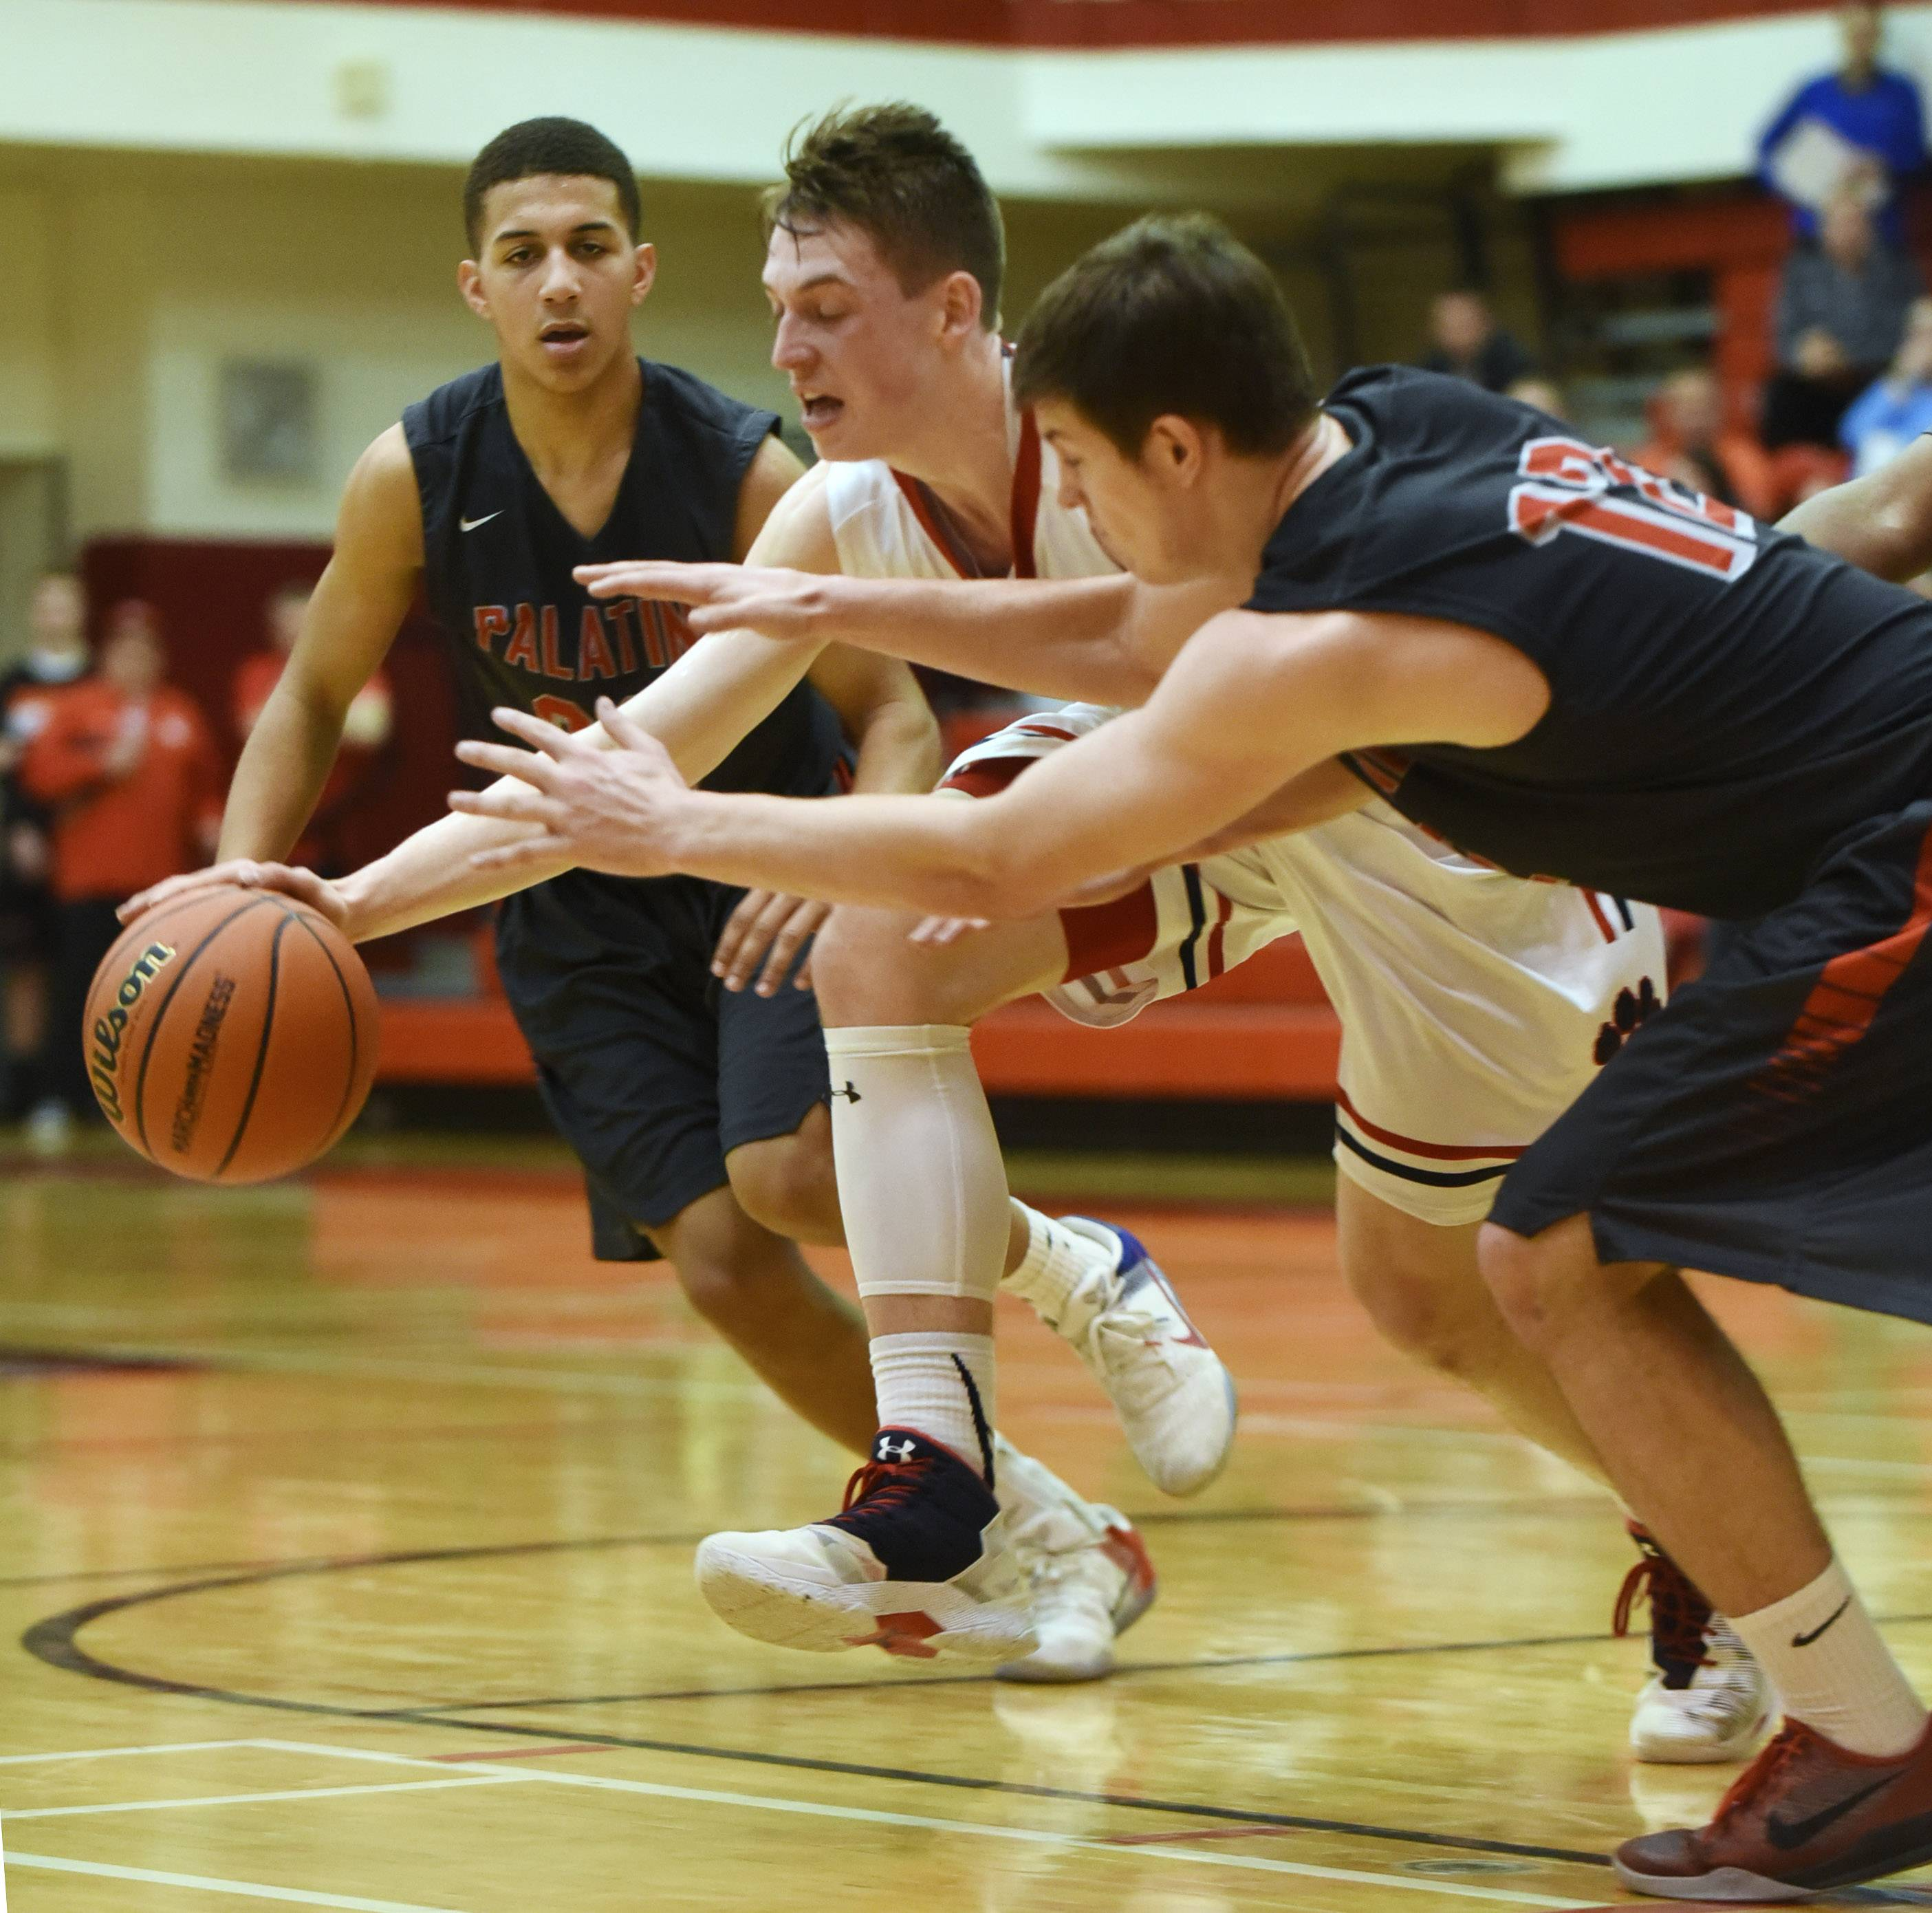 Conant's Jimmy Sotos, right, tries to maintains possession of the ball while making a move between Palatine's Lamon Berry, left, and Johnny O'Shea during the Class 4A regional semifinal at Palatine on Tuesday.